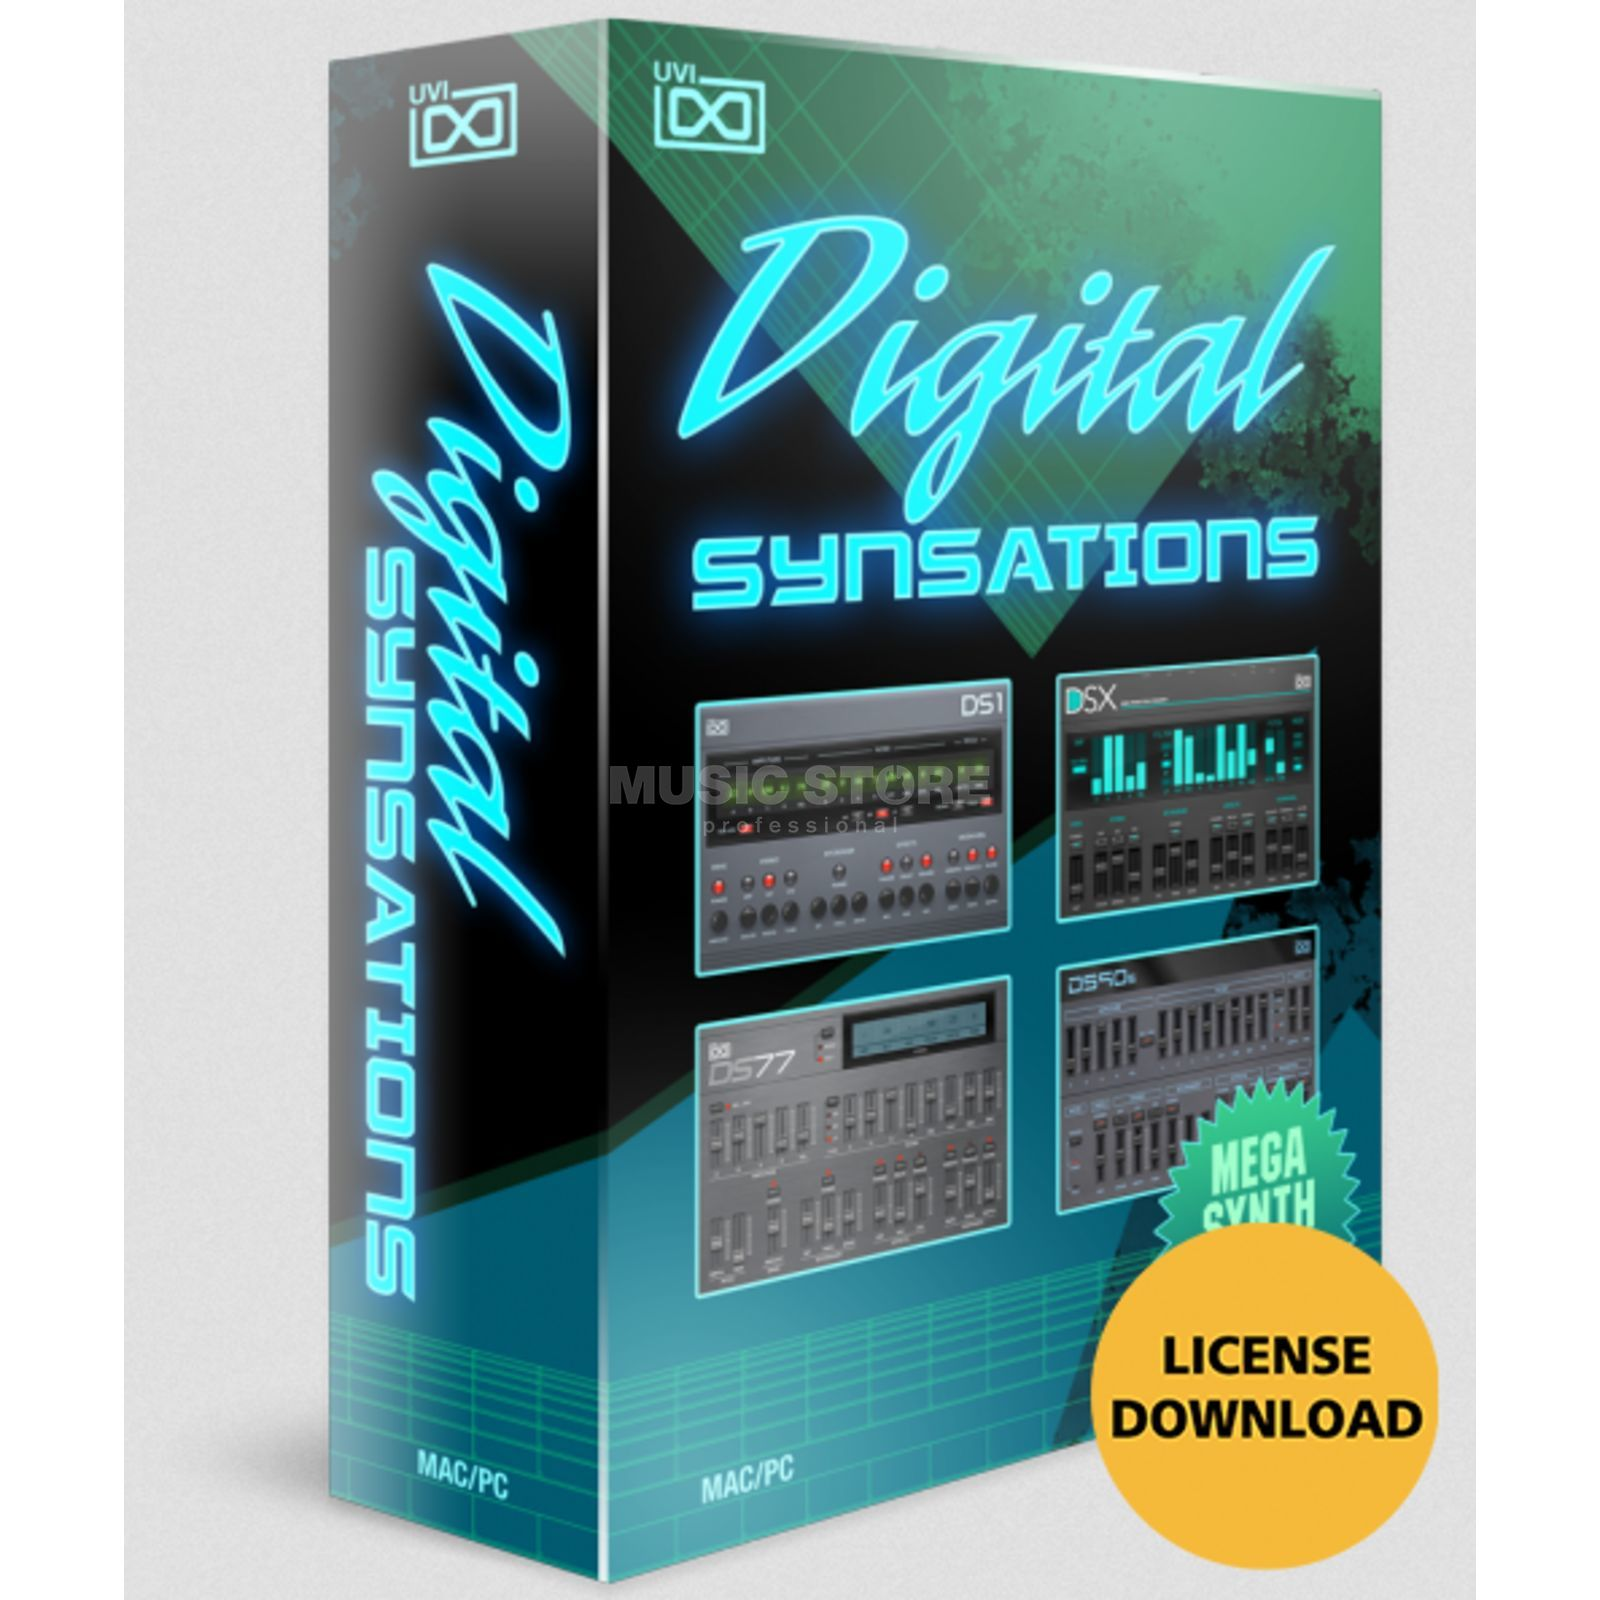 UVI Sounds & Software Digital Synsations (Lizenz) Software Instrument Produktbild